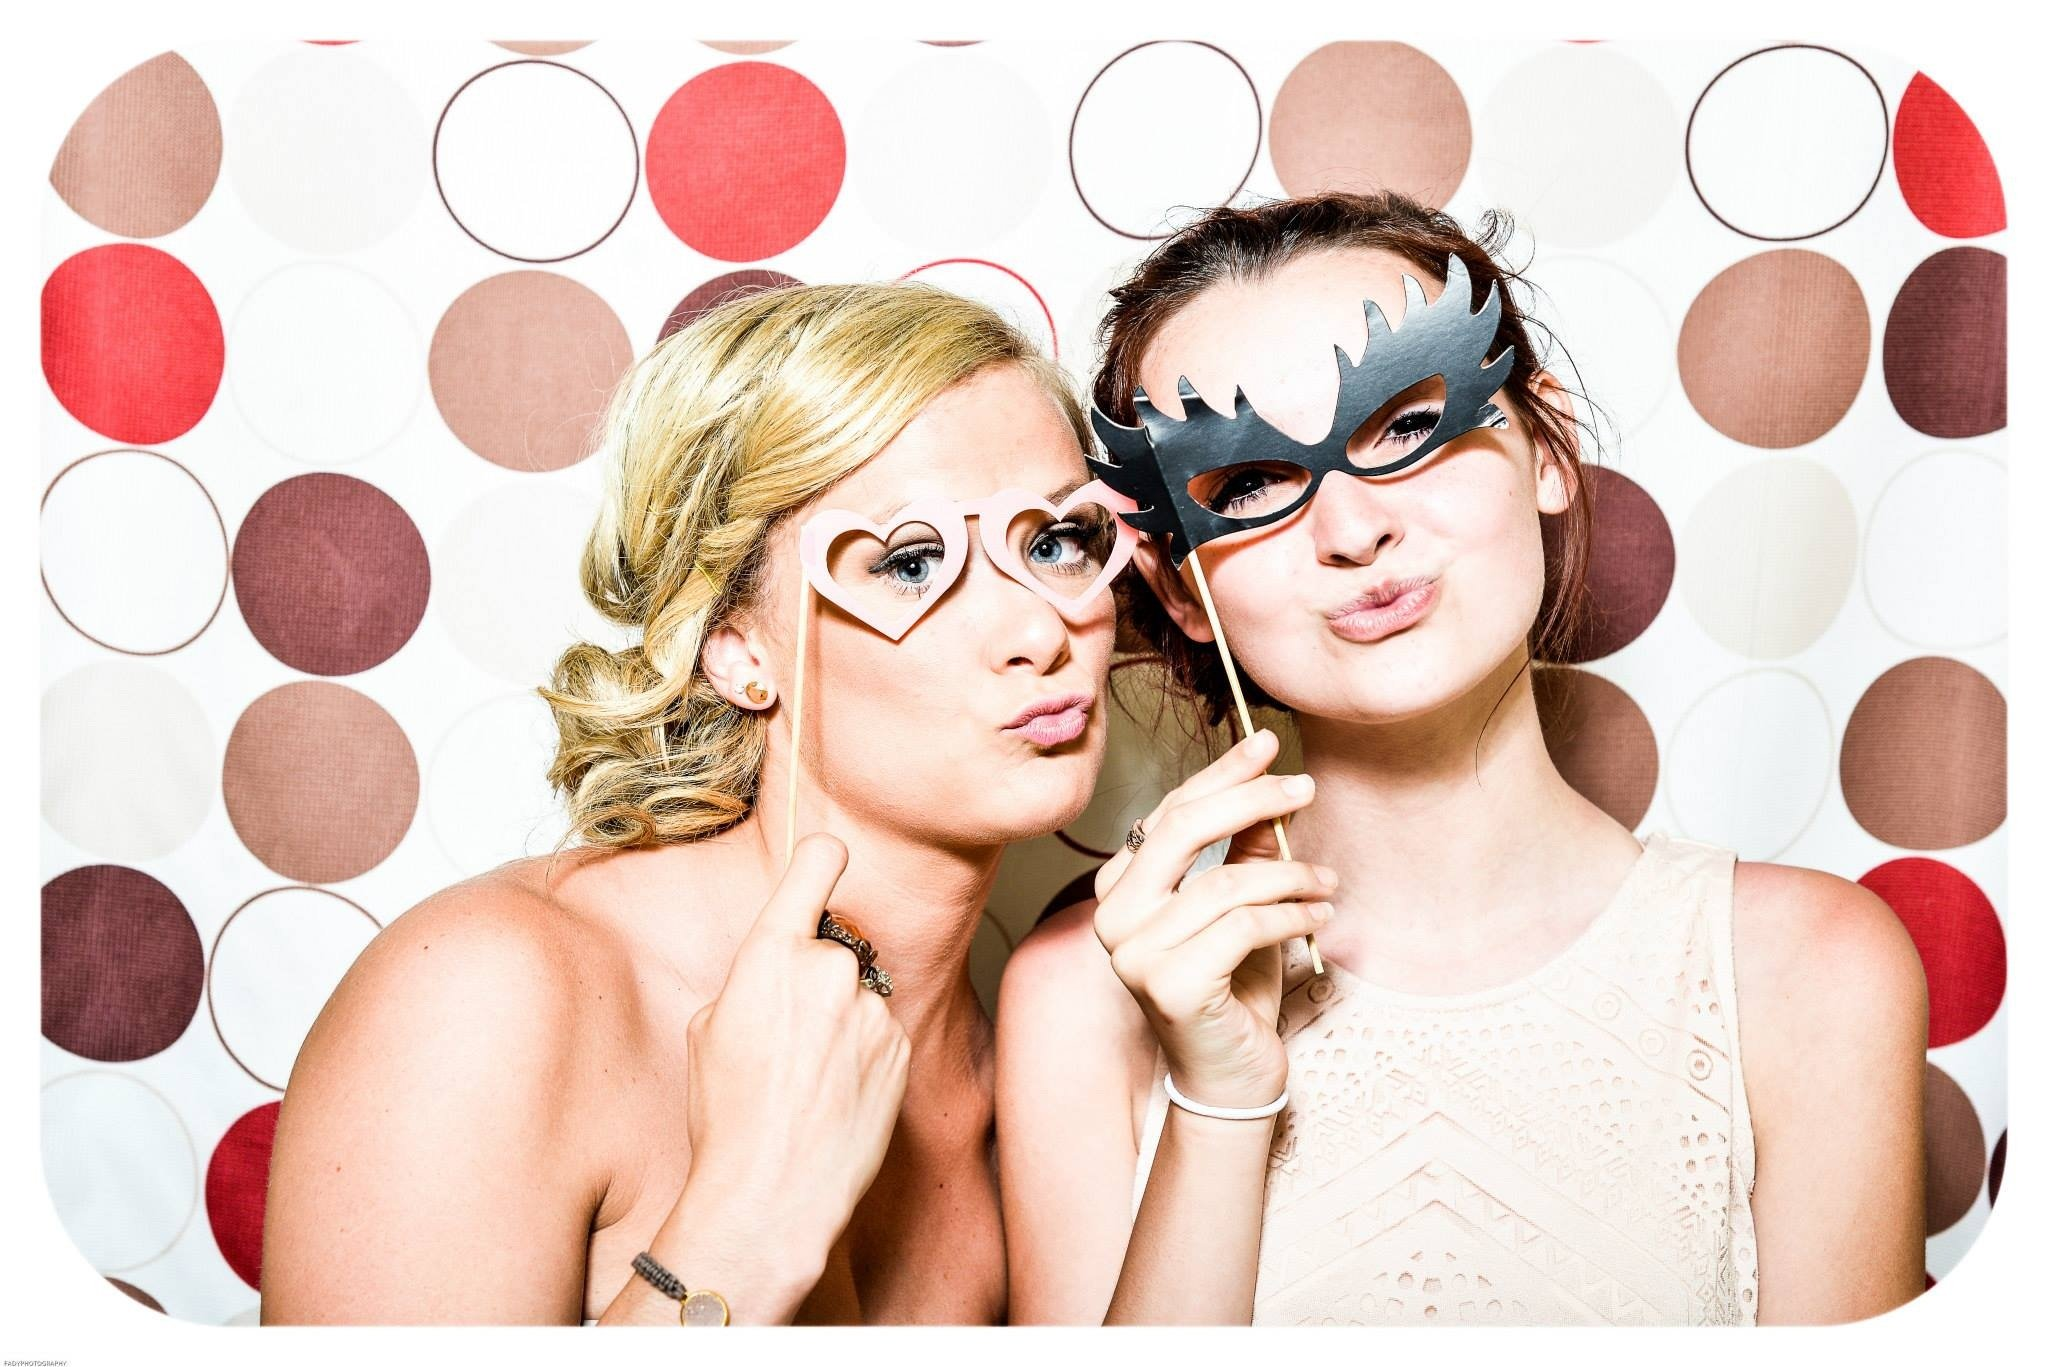 Planning a Stag or Hen Party?